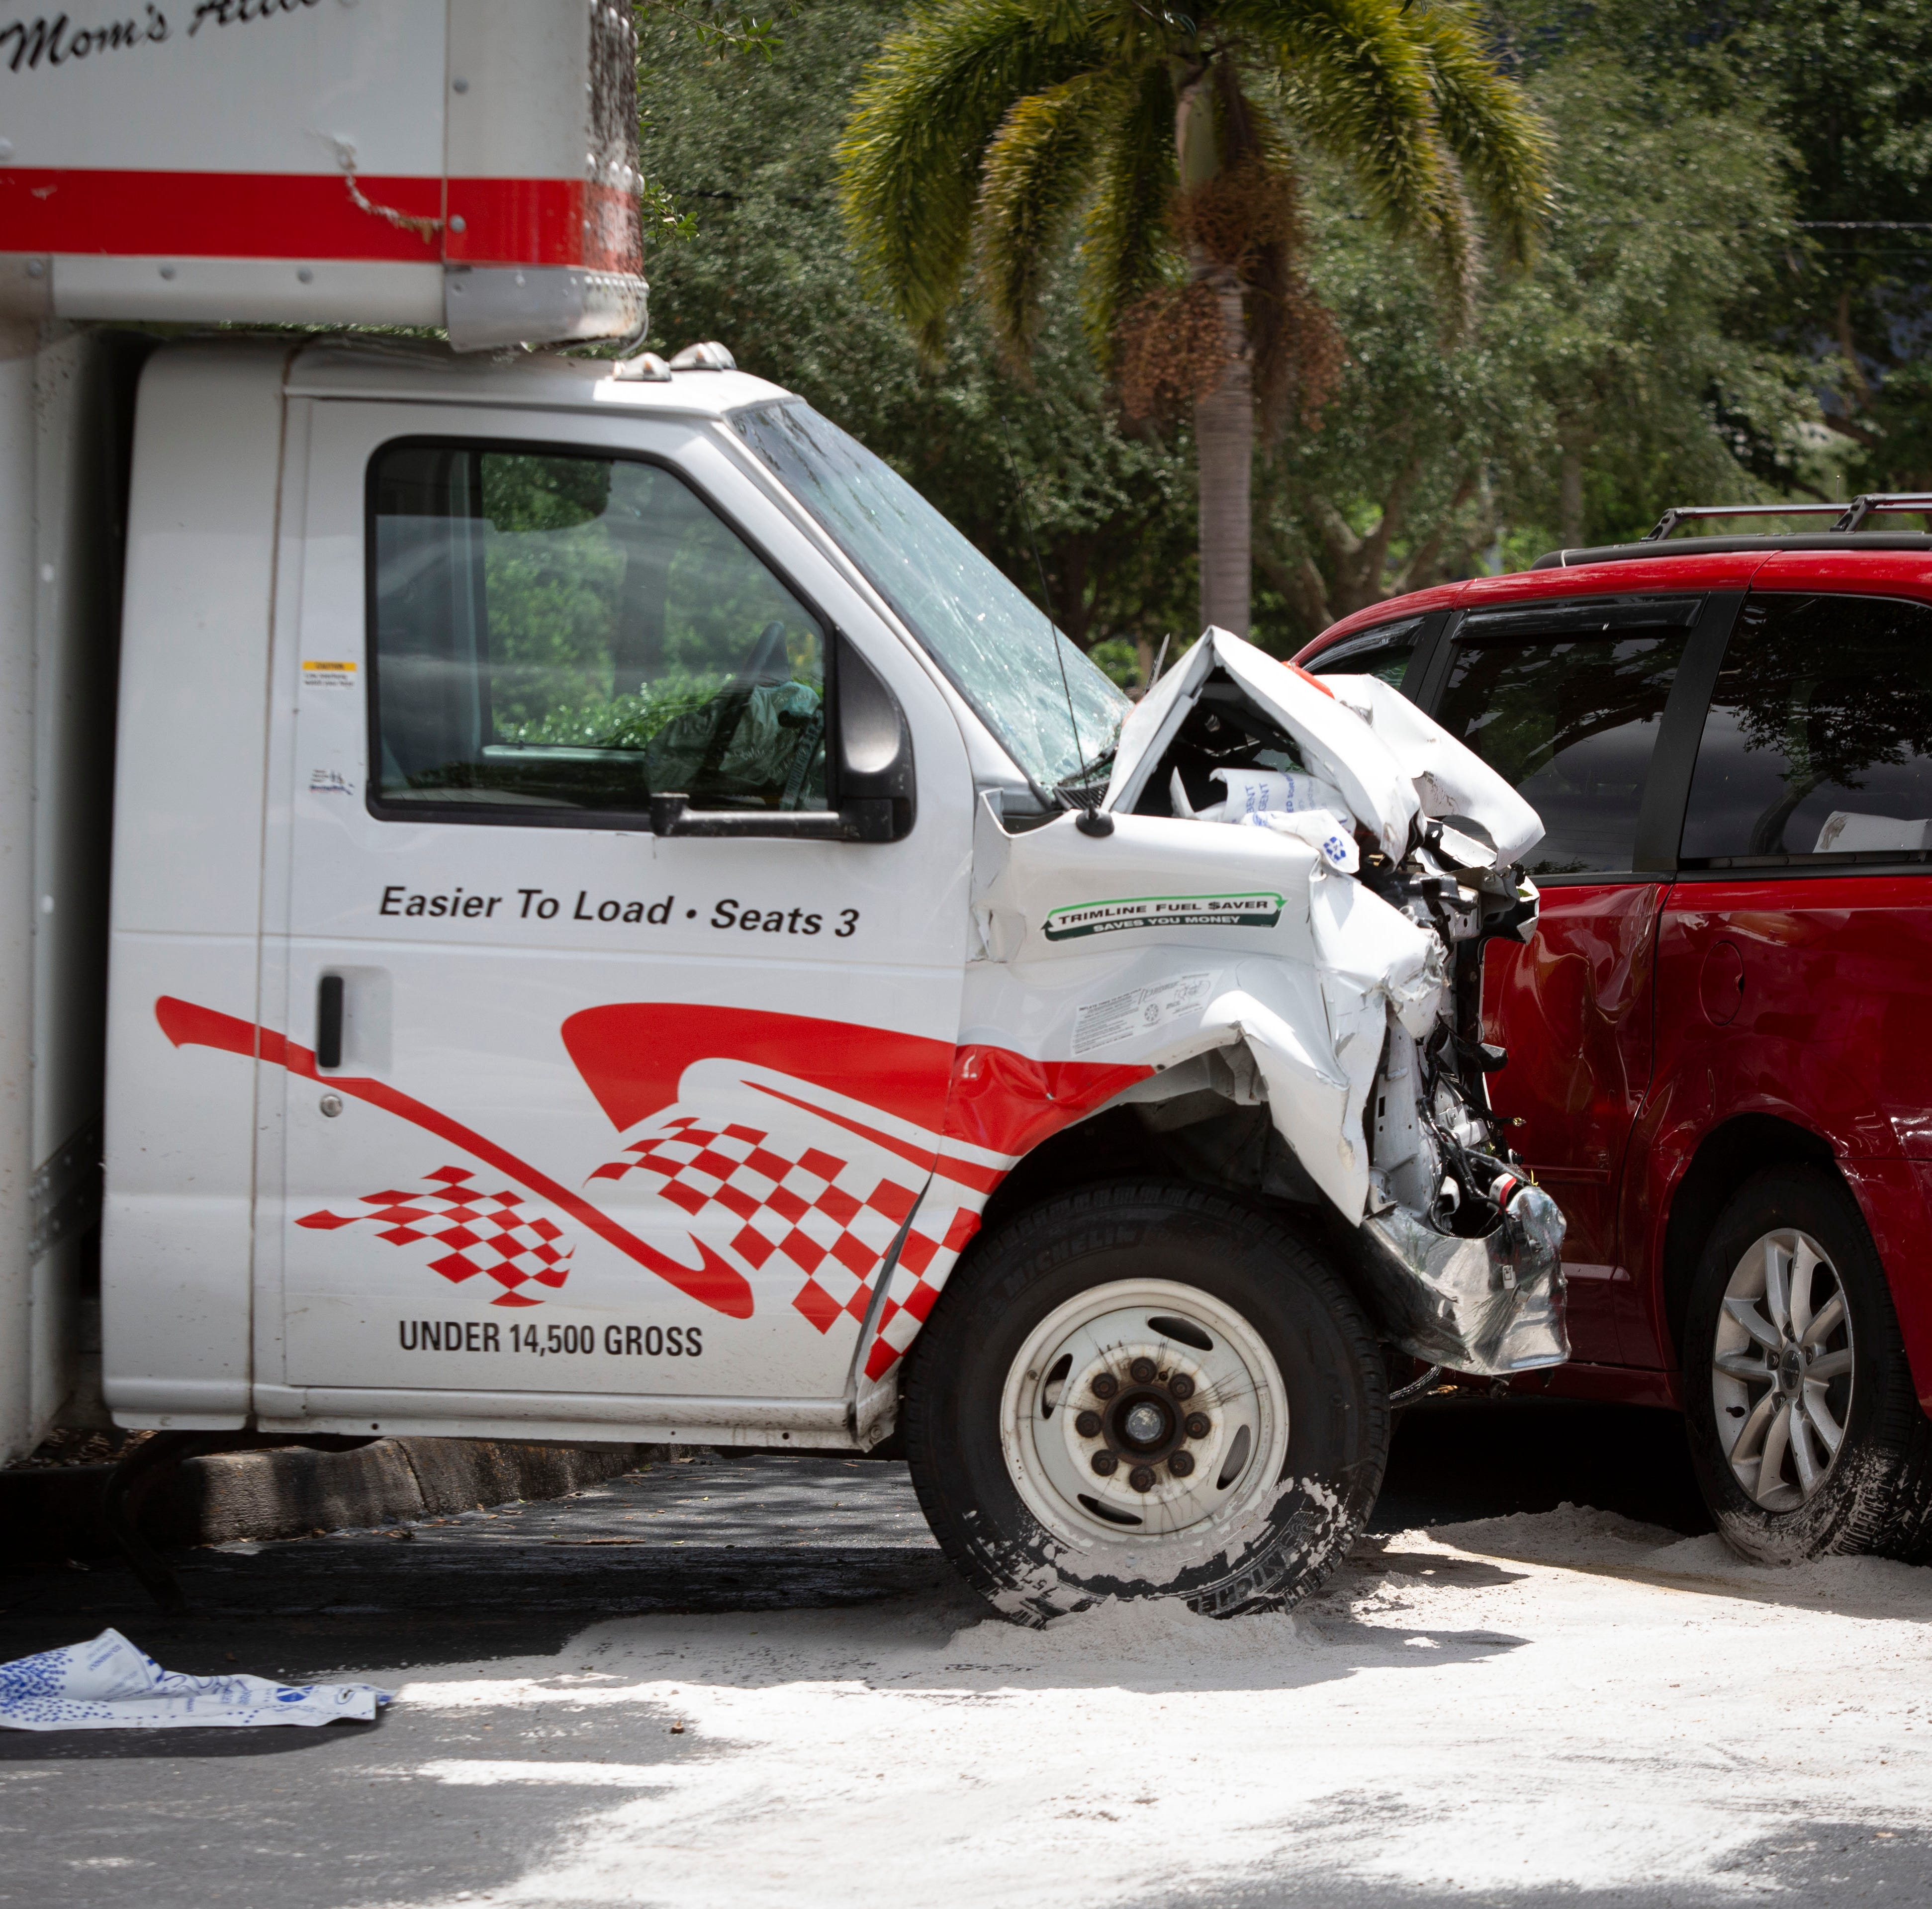 Crash blocks Immokalee Road during lunch rush; driver had medical emergency in 11-car crash